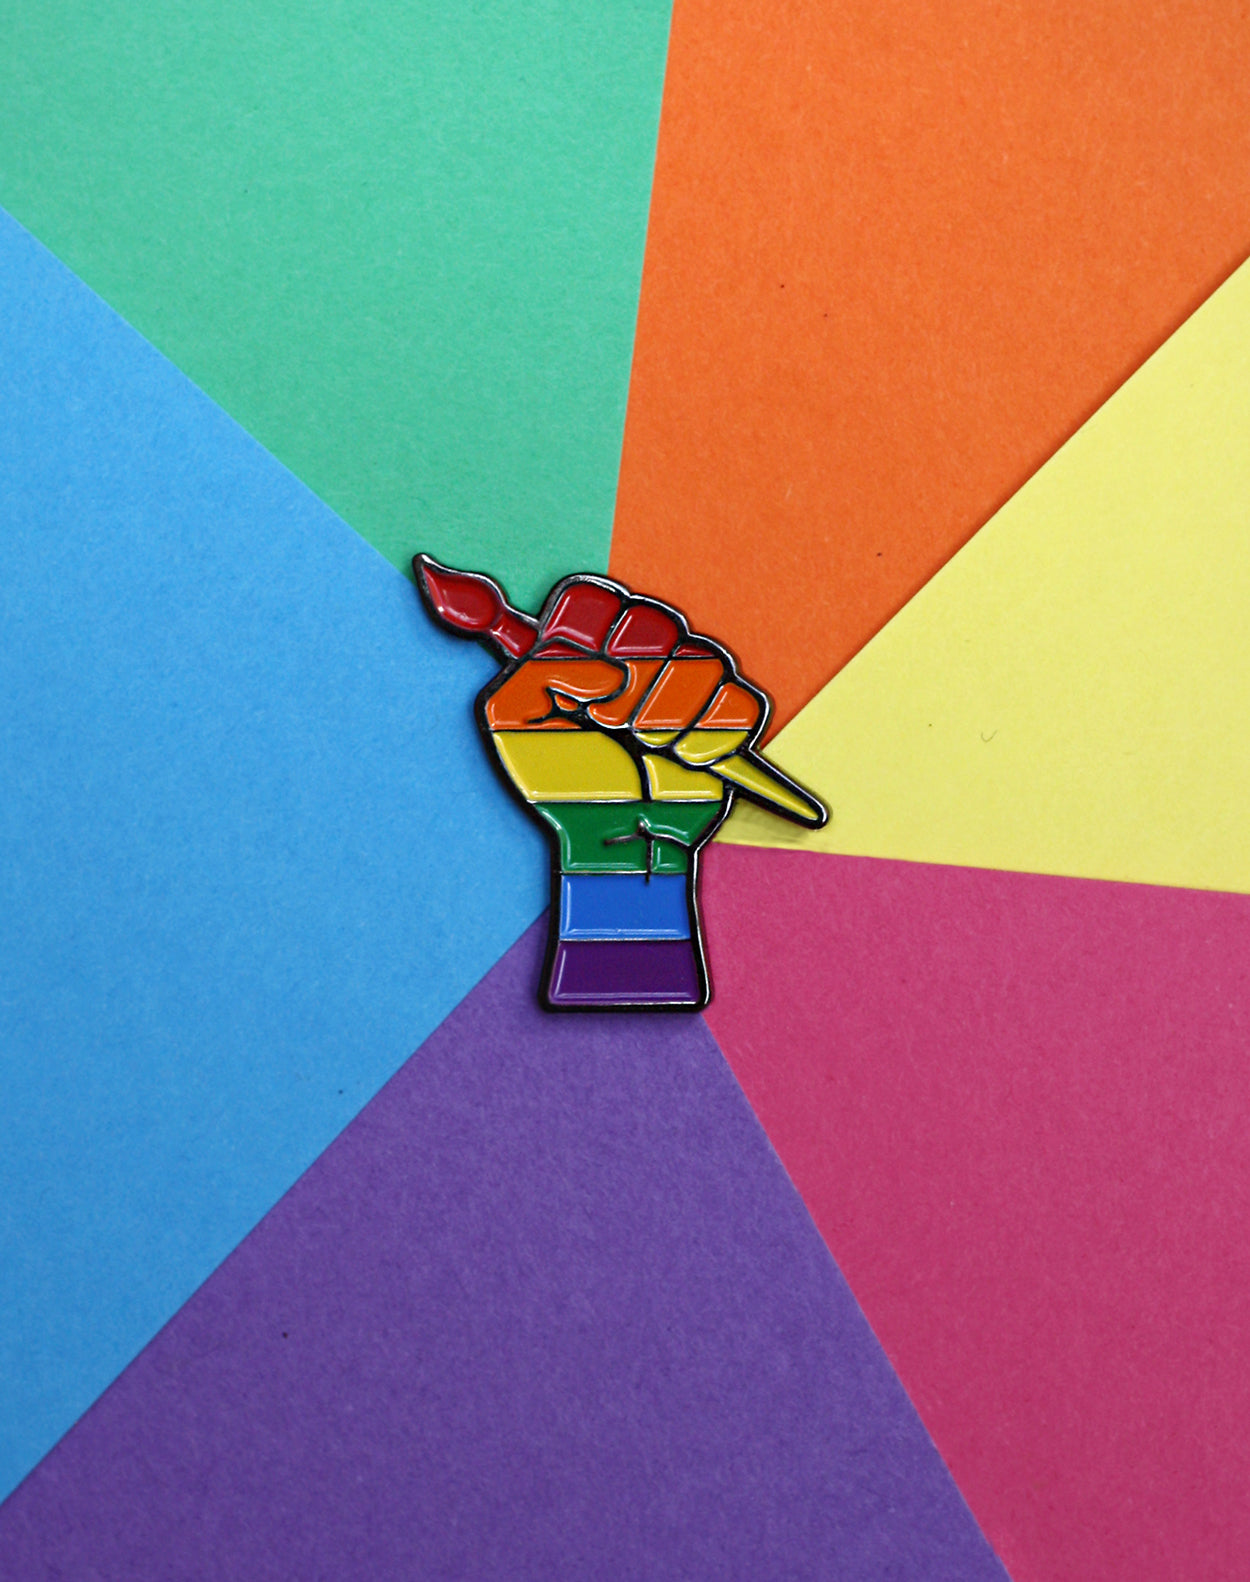 Rainbow LGBT Creative revolution power fist metal enamel pin badge